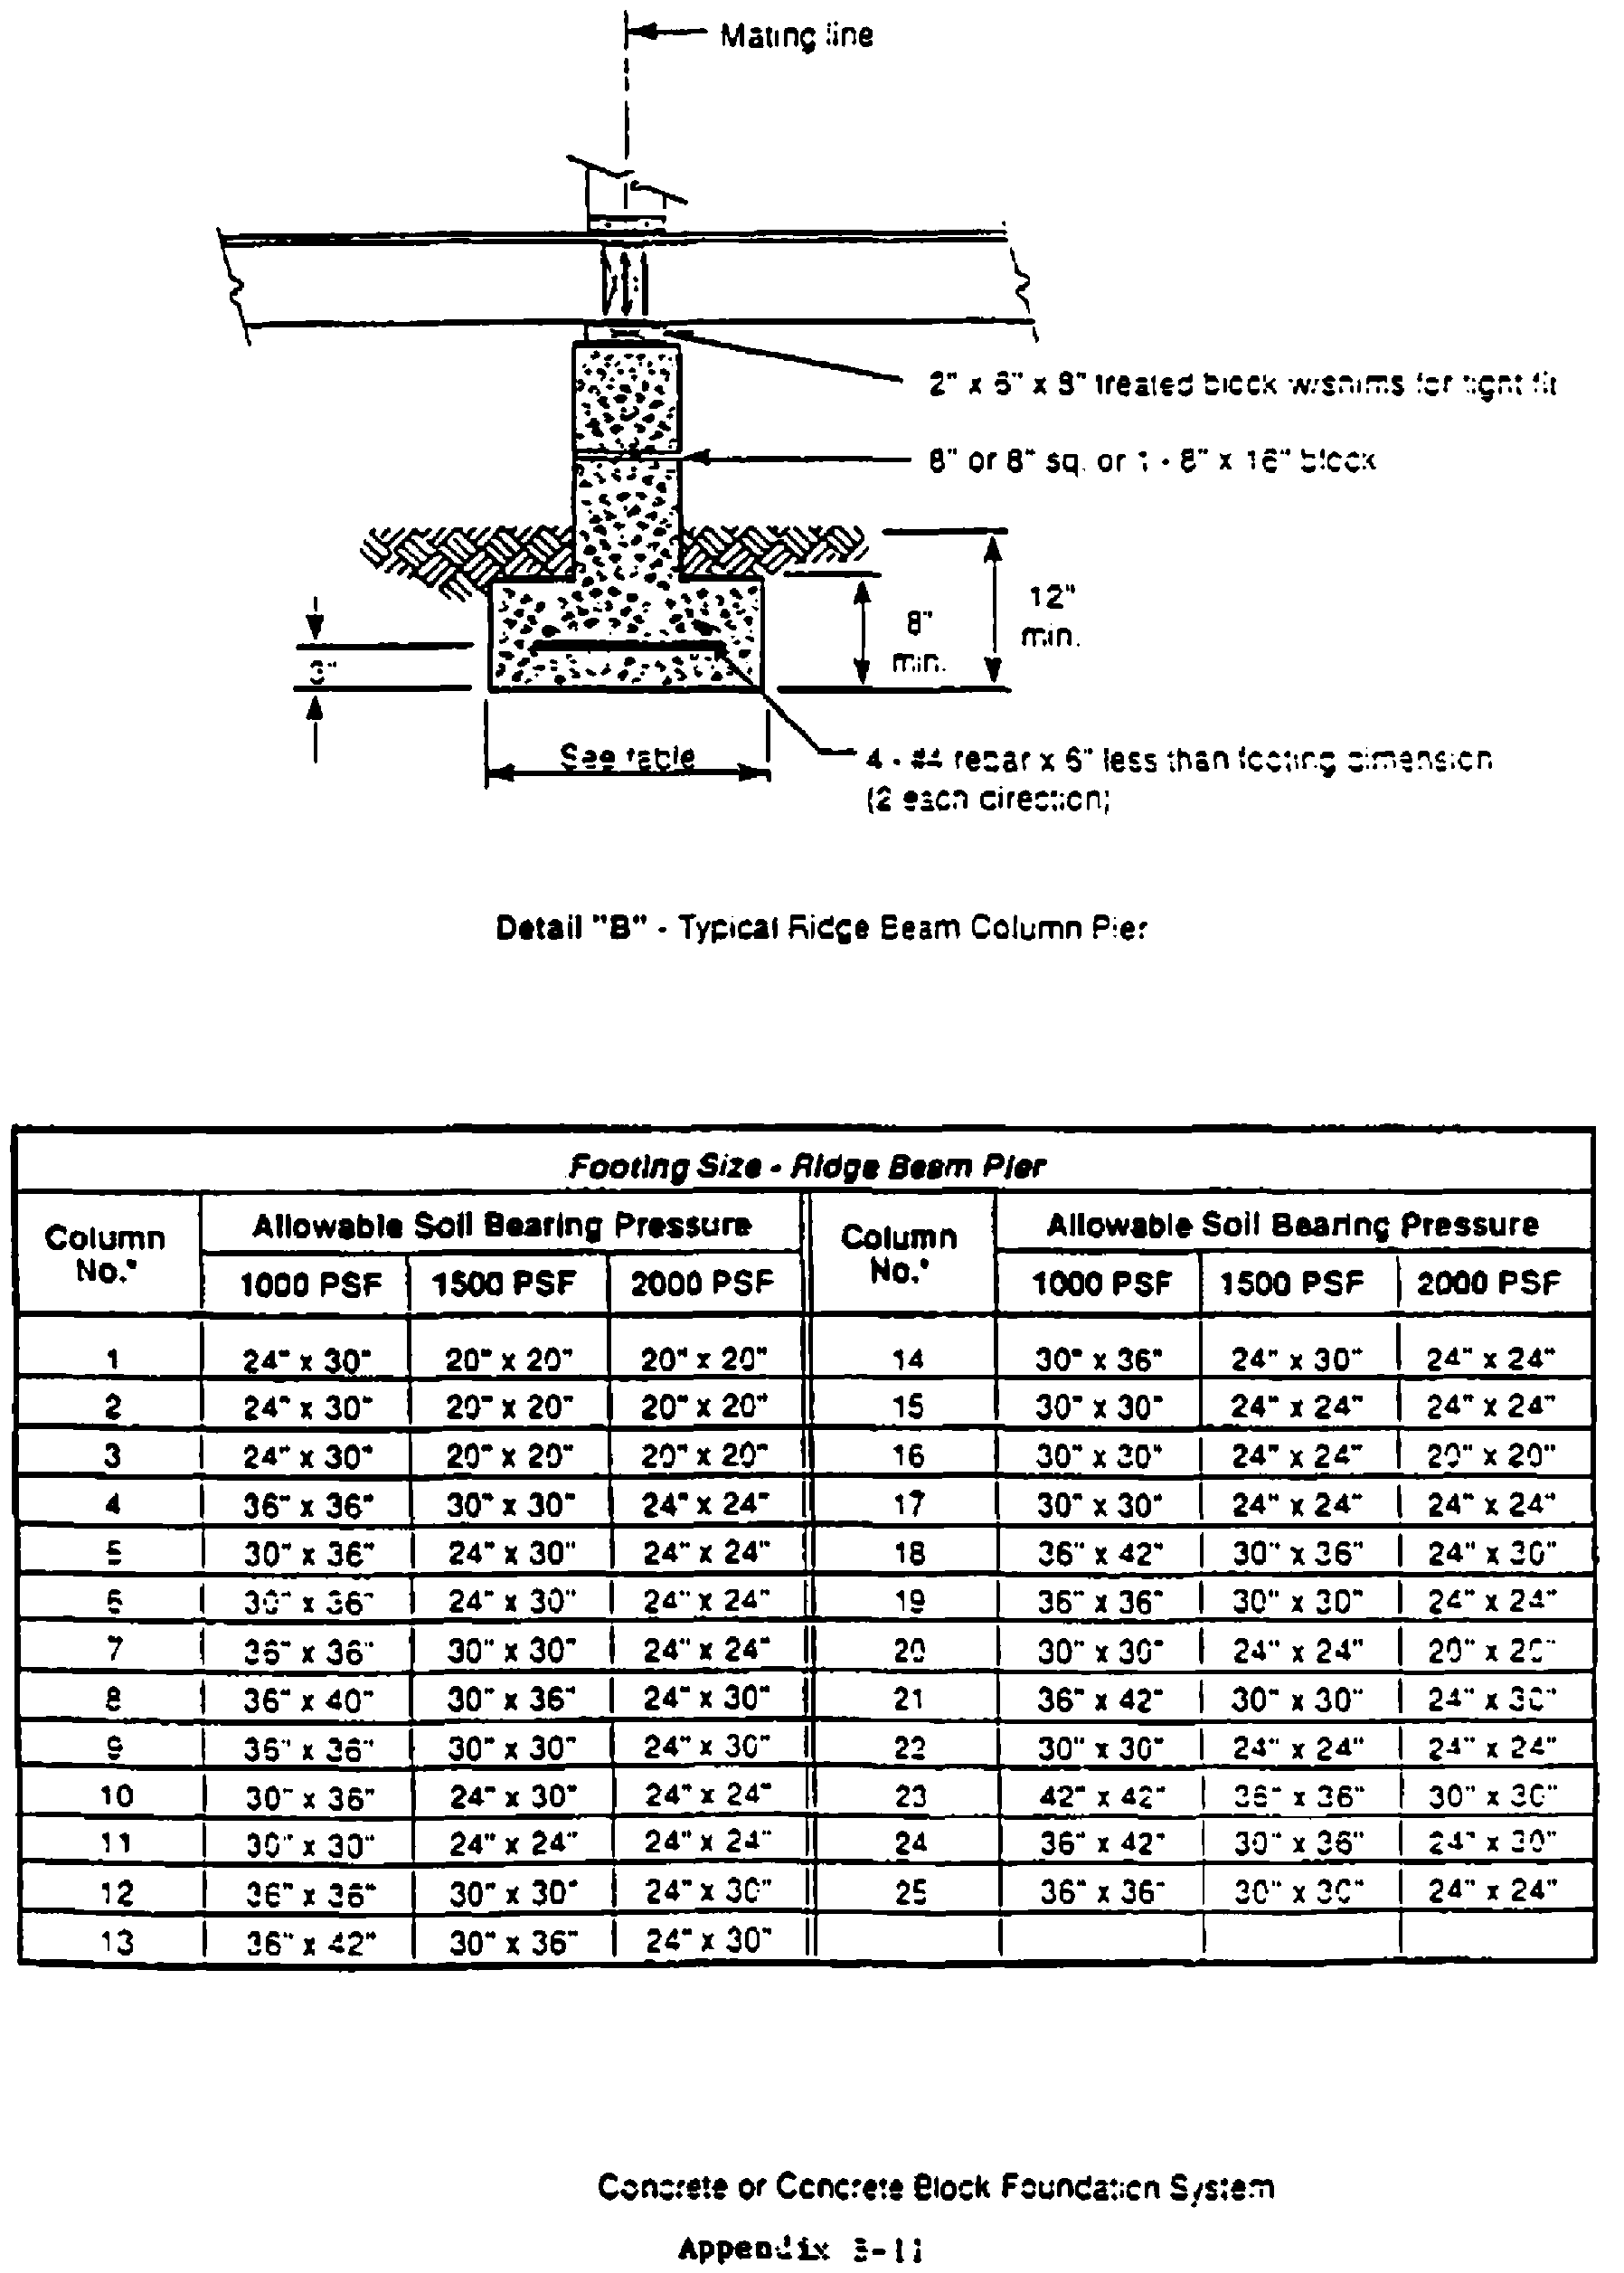 TYPICAL DESIGNS FOR LOAD-BEARING SUPPORTS FOR MANUFACTURED HOMES - Figure 9